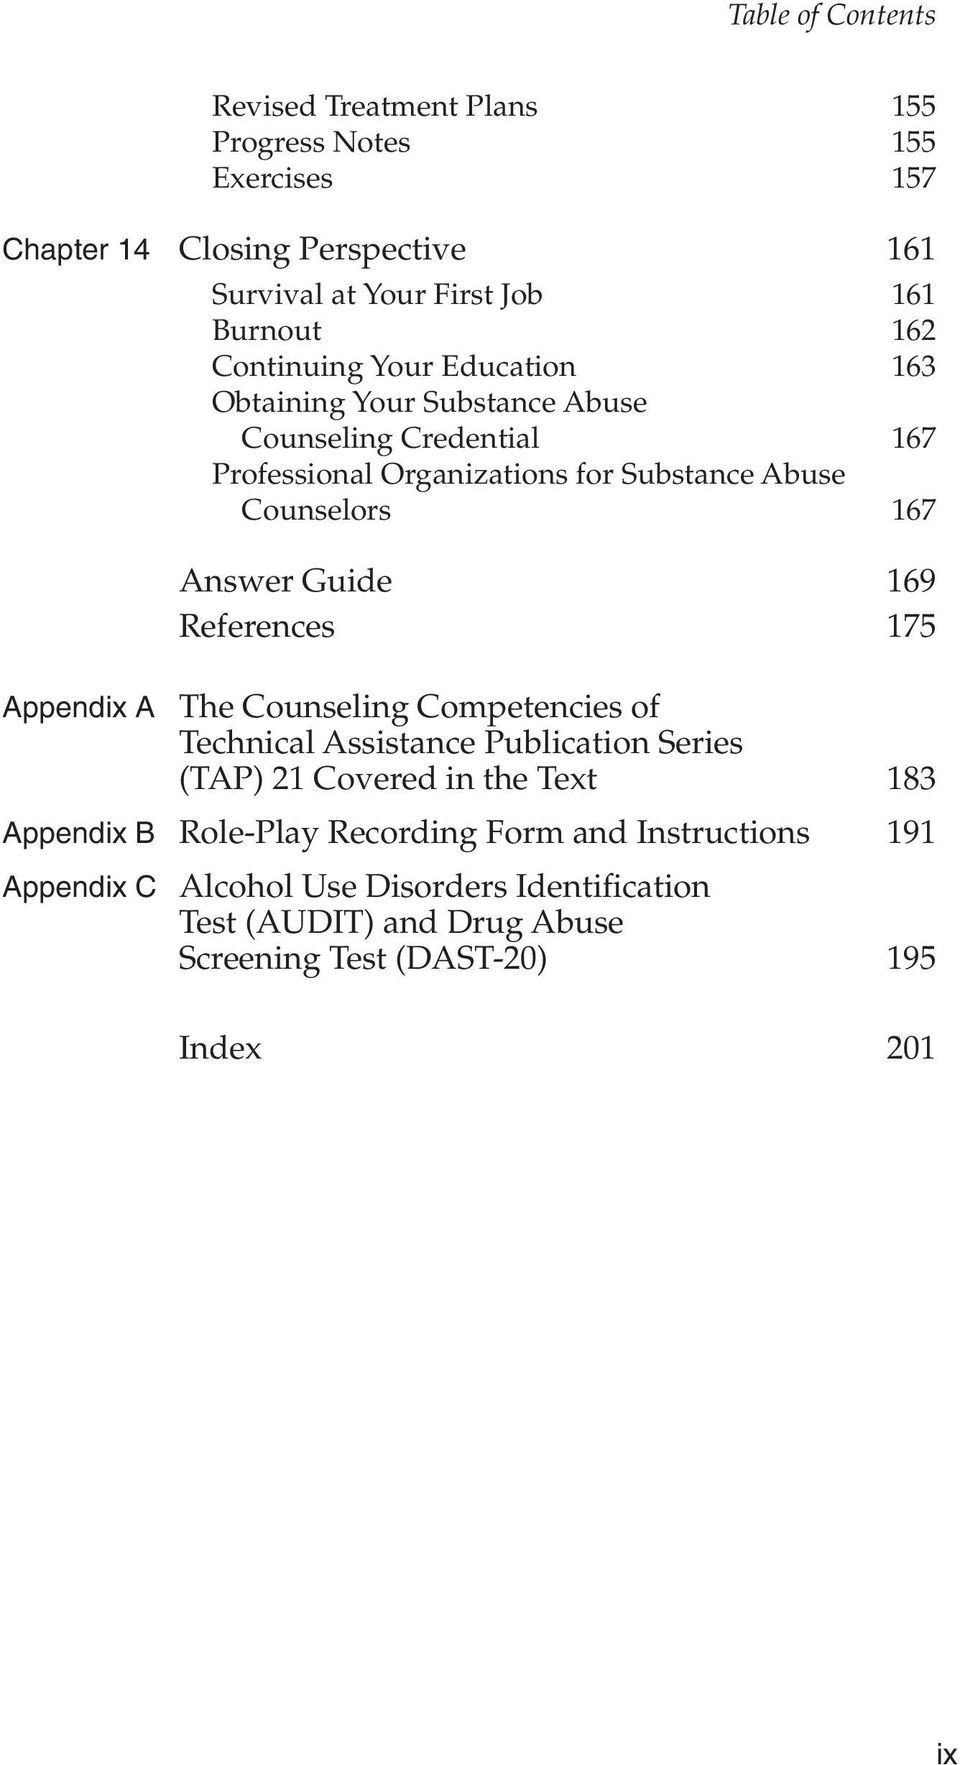 Guide 169 References 175 Appendix A The Counseling Competencies of Technical Assistance Publication Series (TAP) 21 Covered in the Text 183 Appendix B